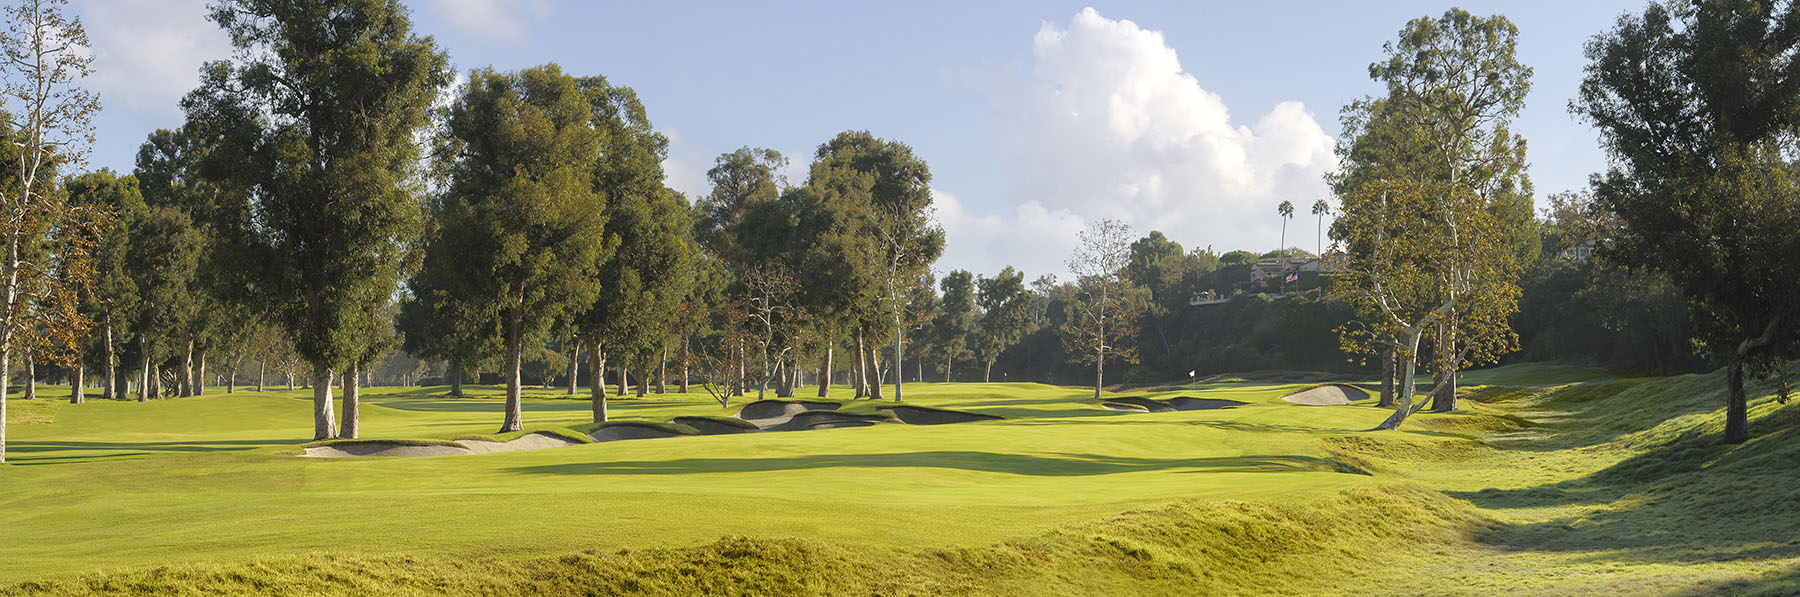 Golf Course Image - Riviera Country Club No. 7